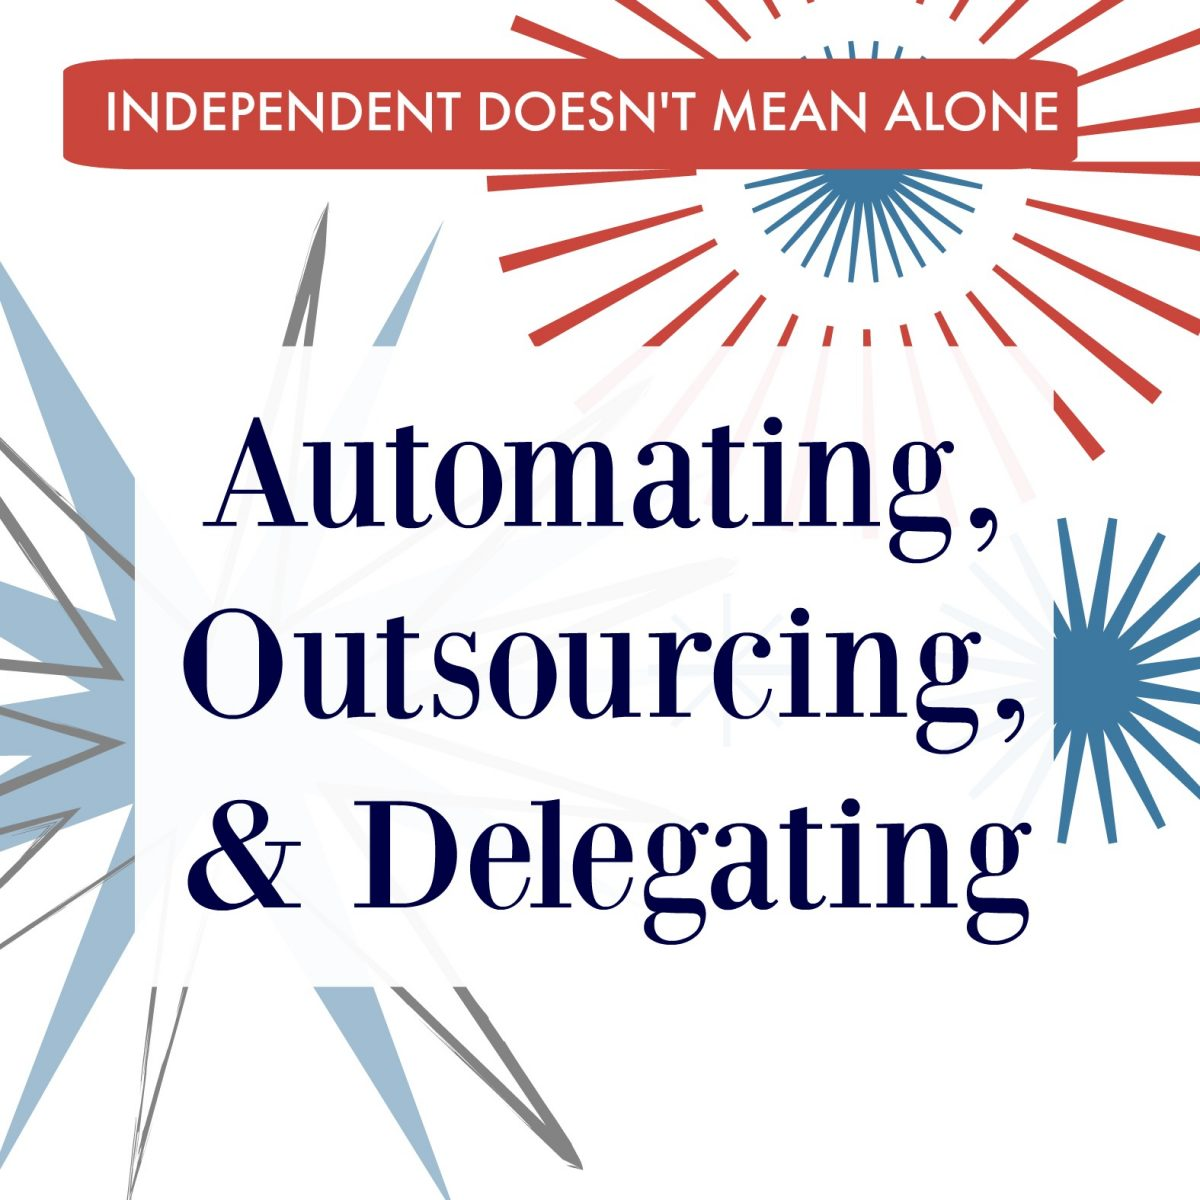 Automating, Outsourcing, & Delegating